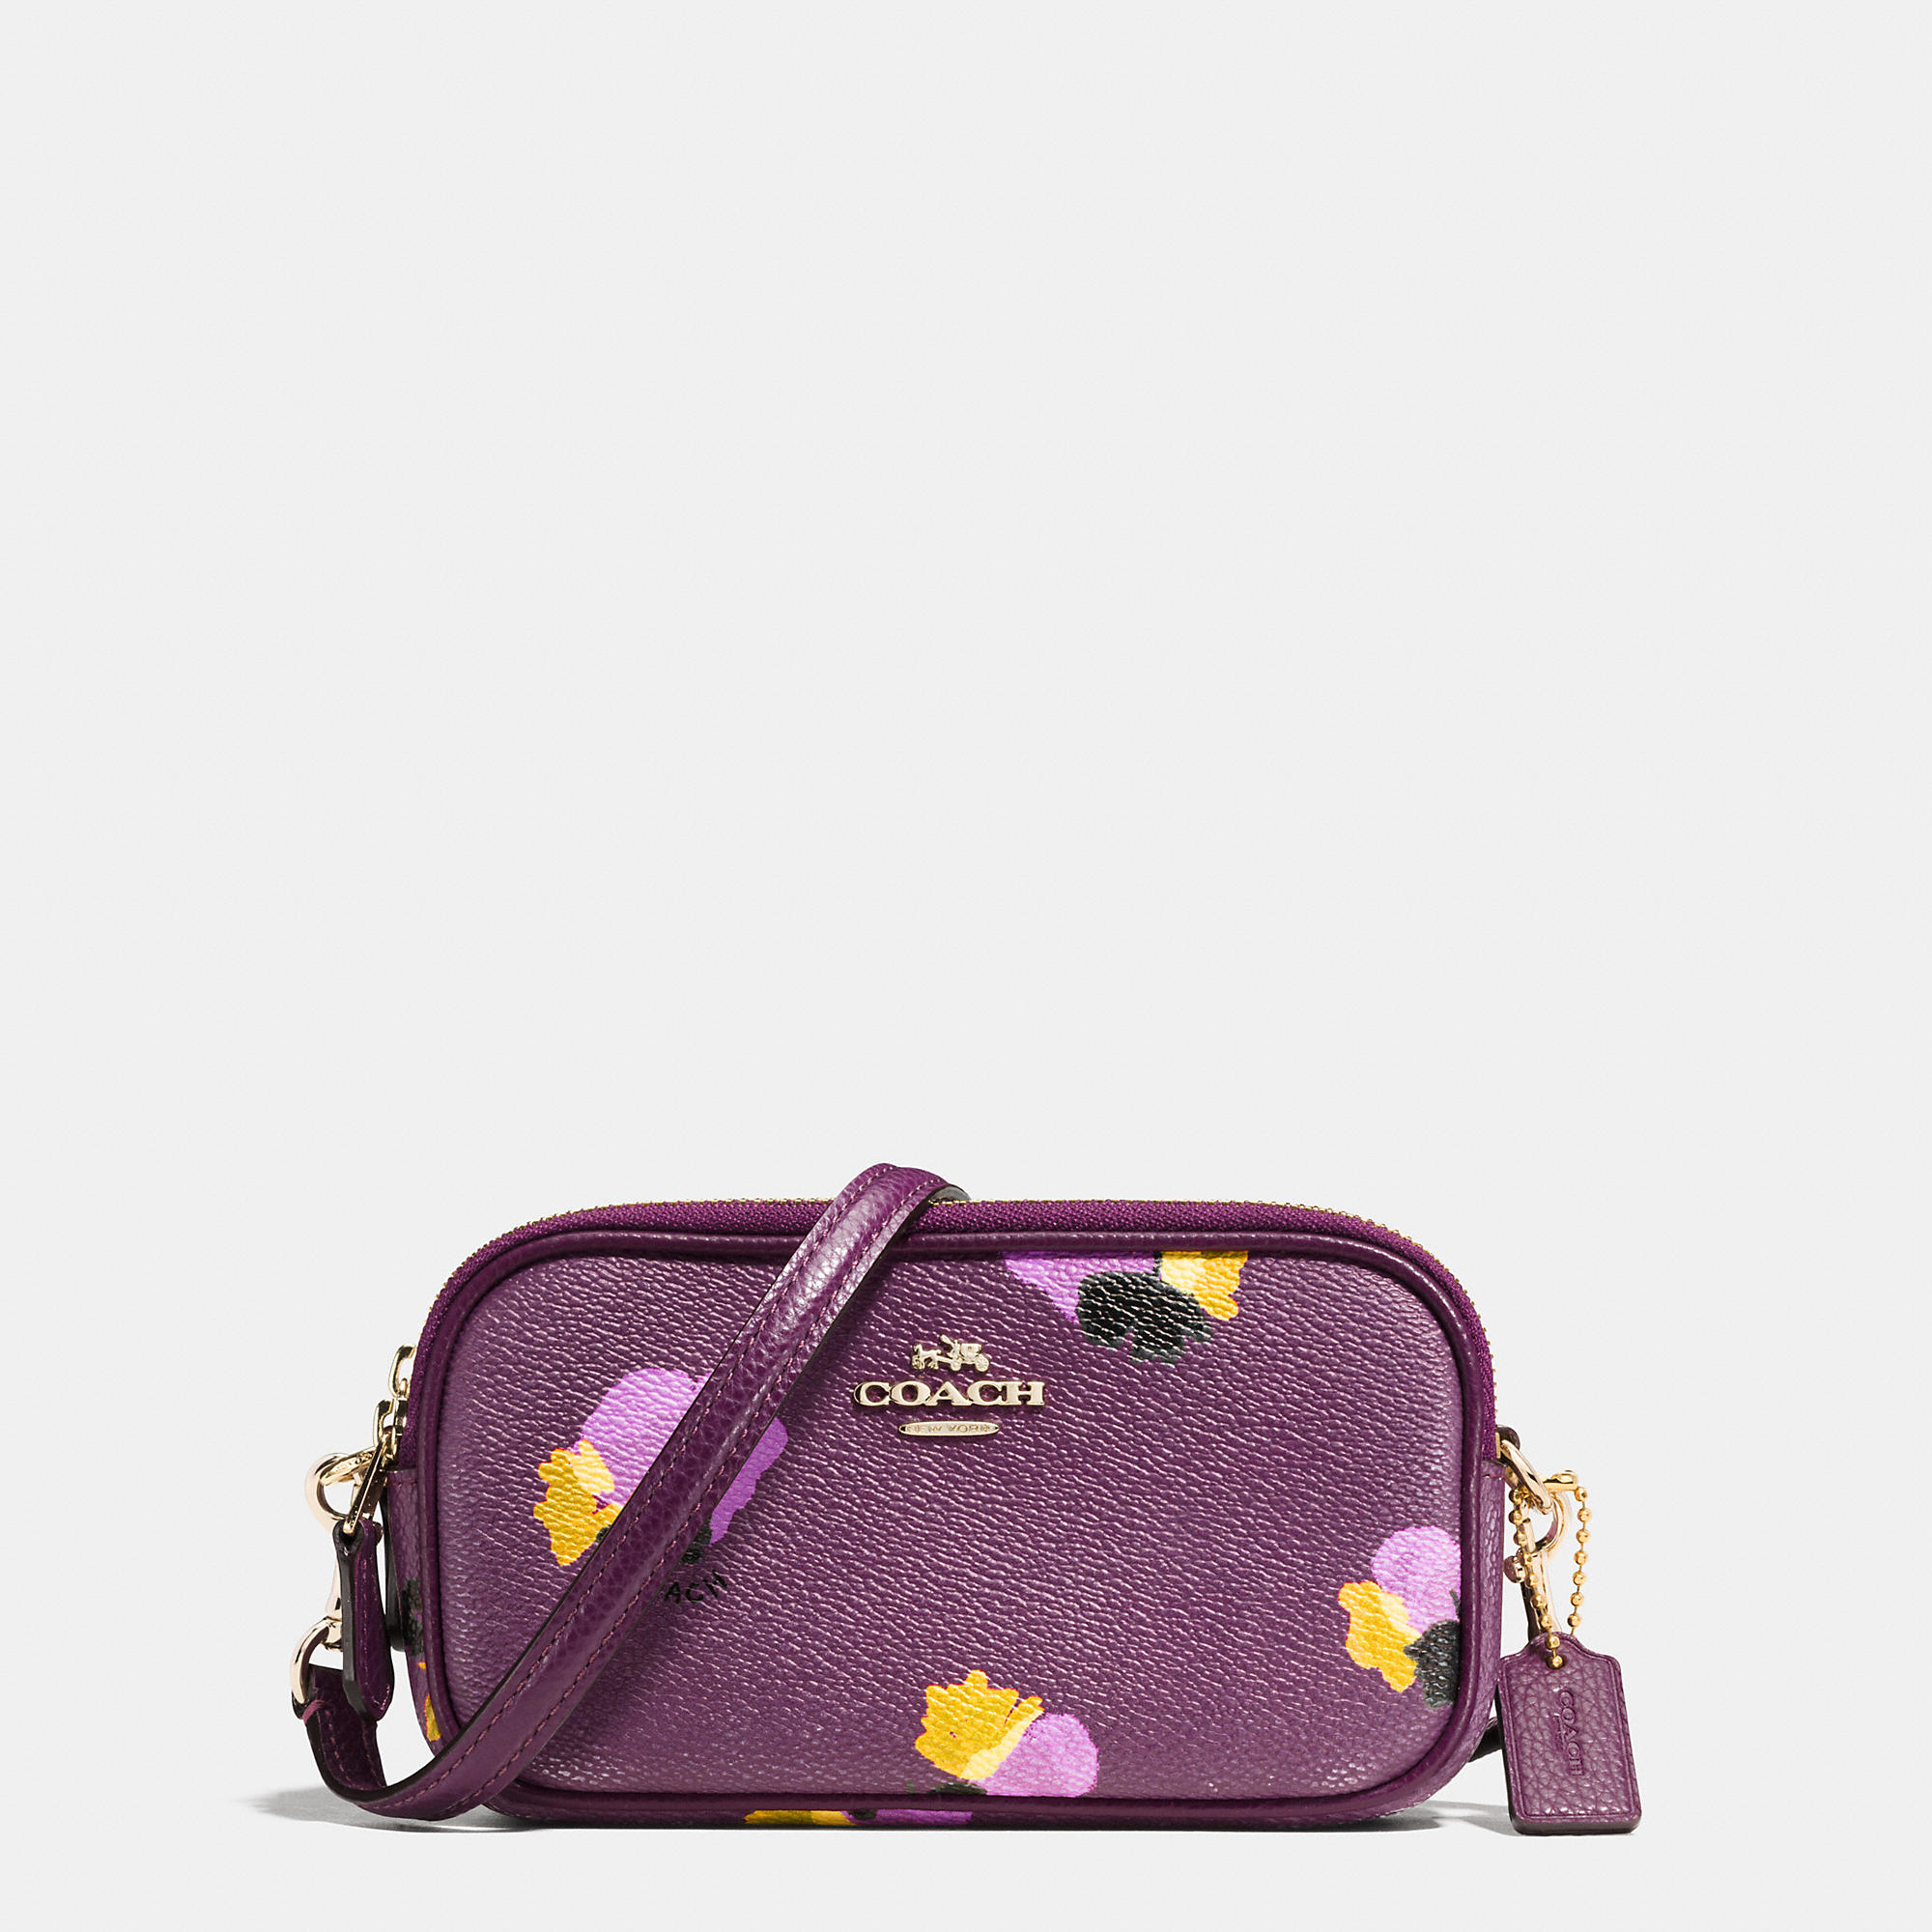 1a55a98cb COACH Crossbody Pouch In Floral Print Coated Canvas - Lyst